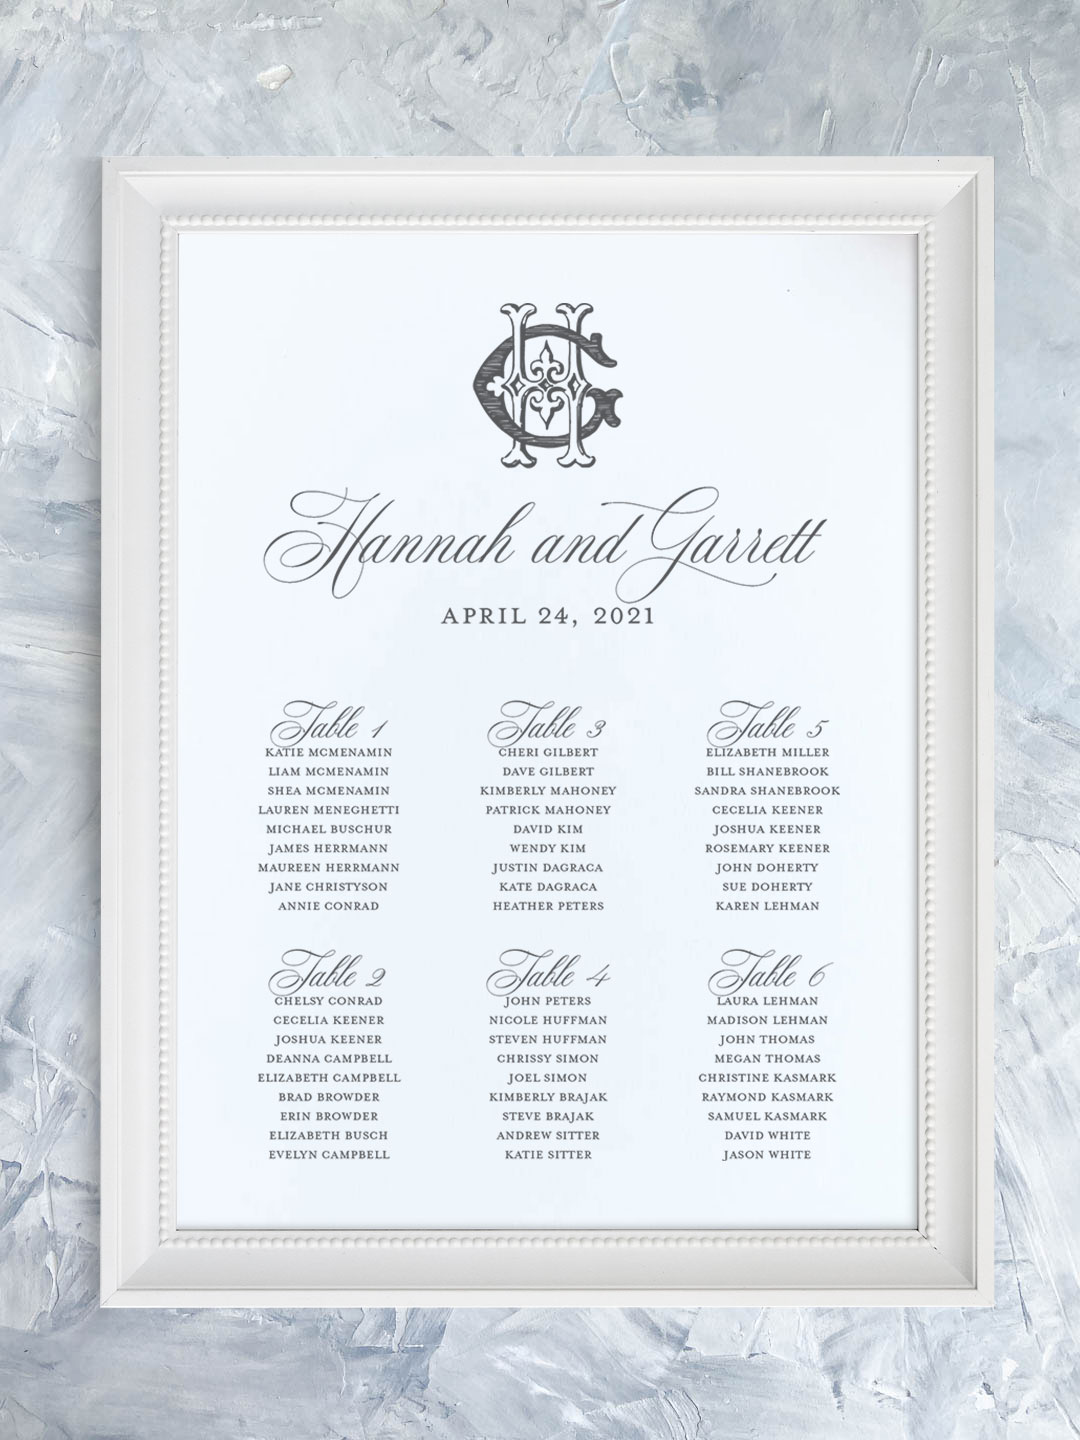 Wedding seating chart with traditional script font and vintage monogram organized by table.